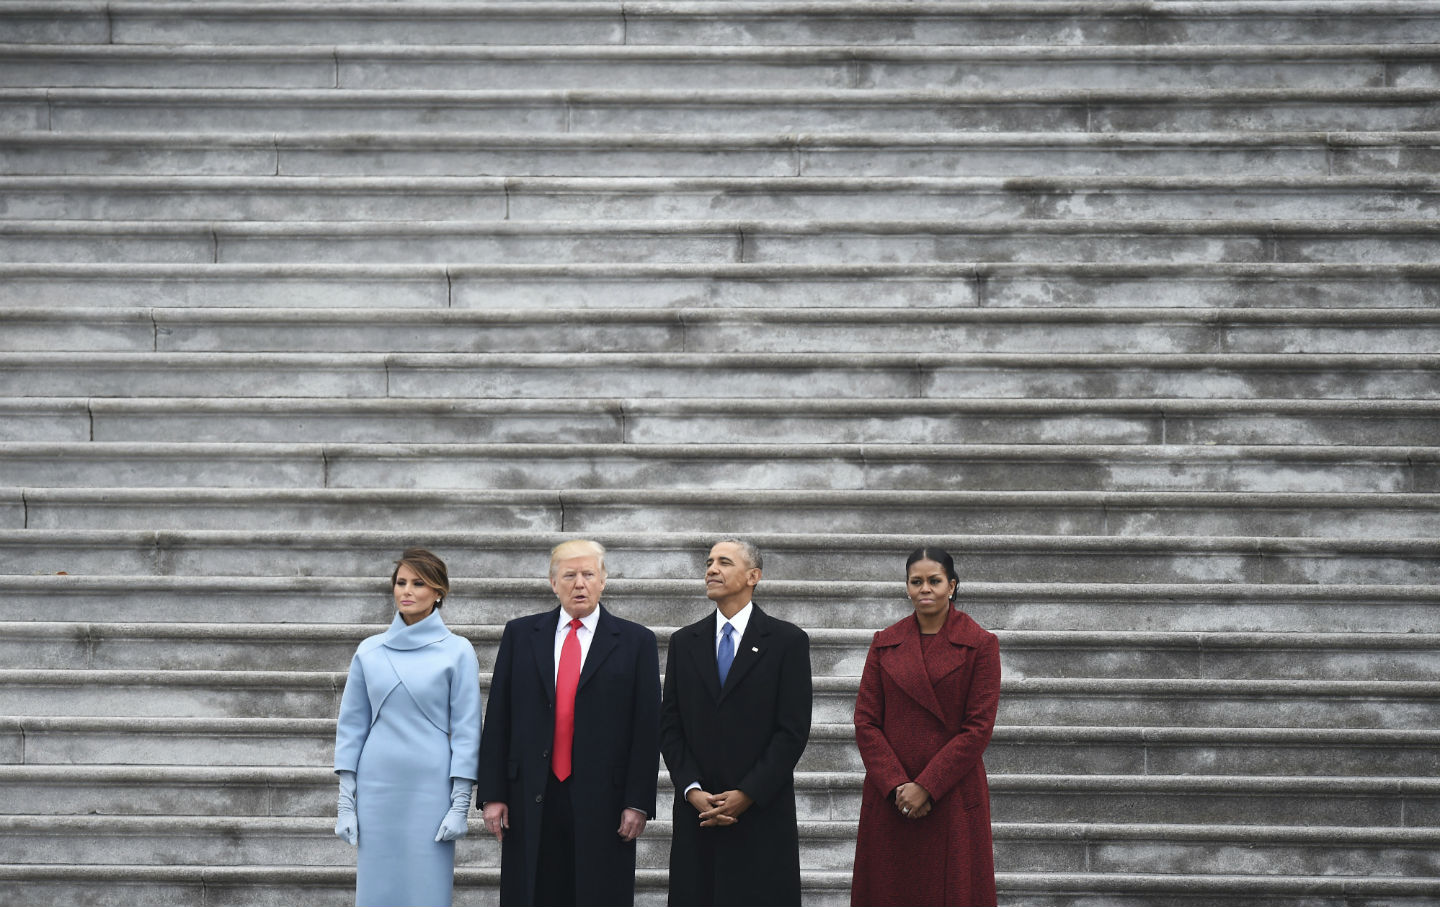 Obamas and Trumps at Inauguration